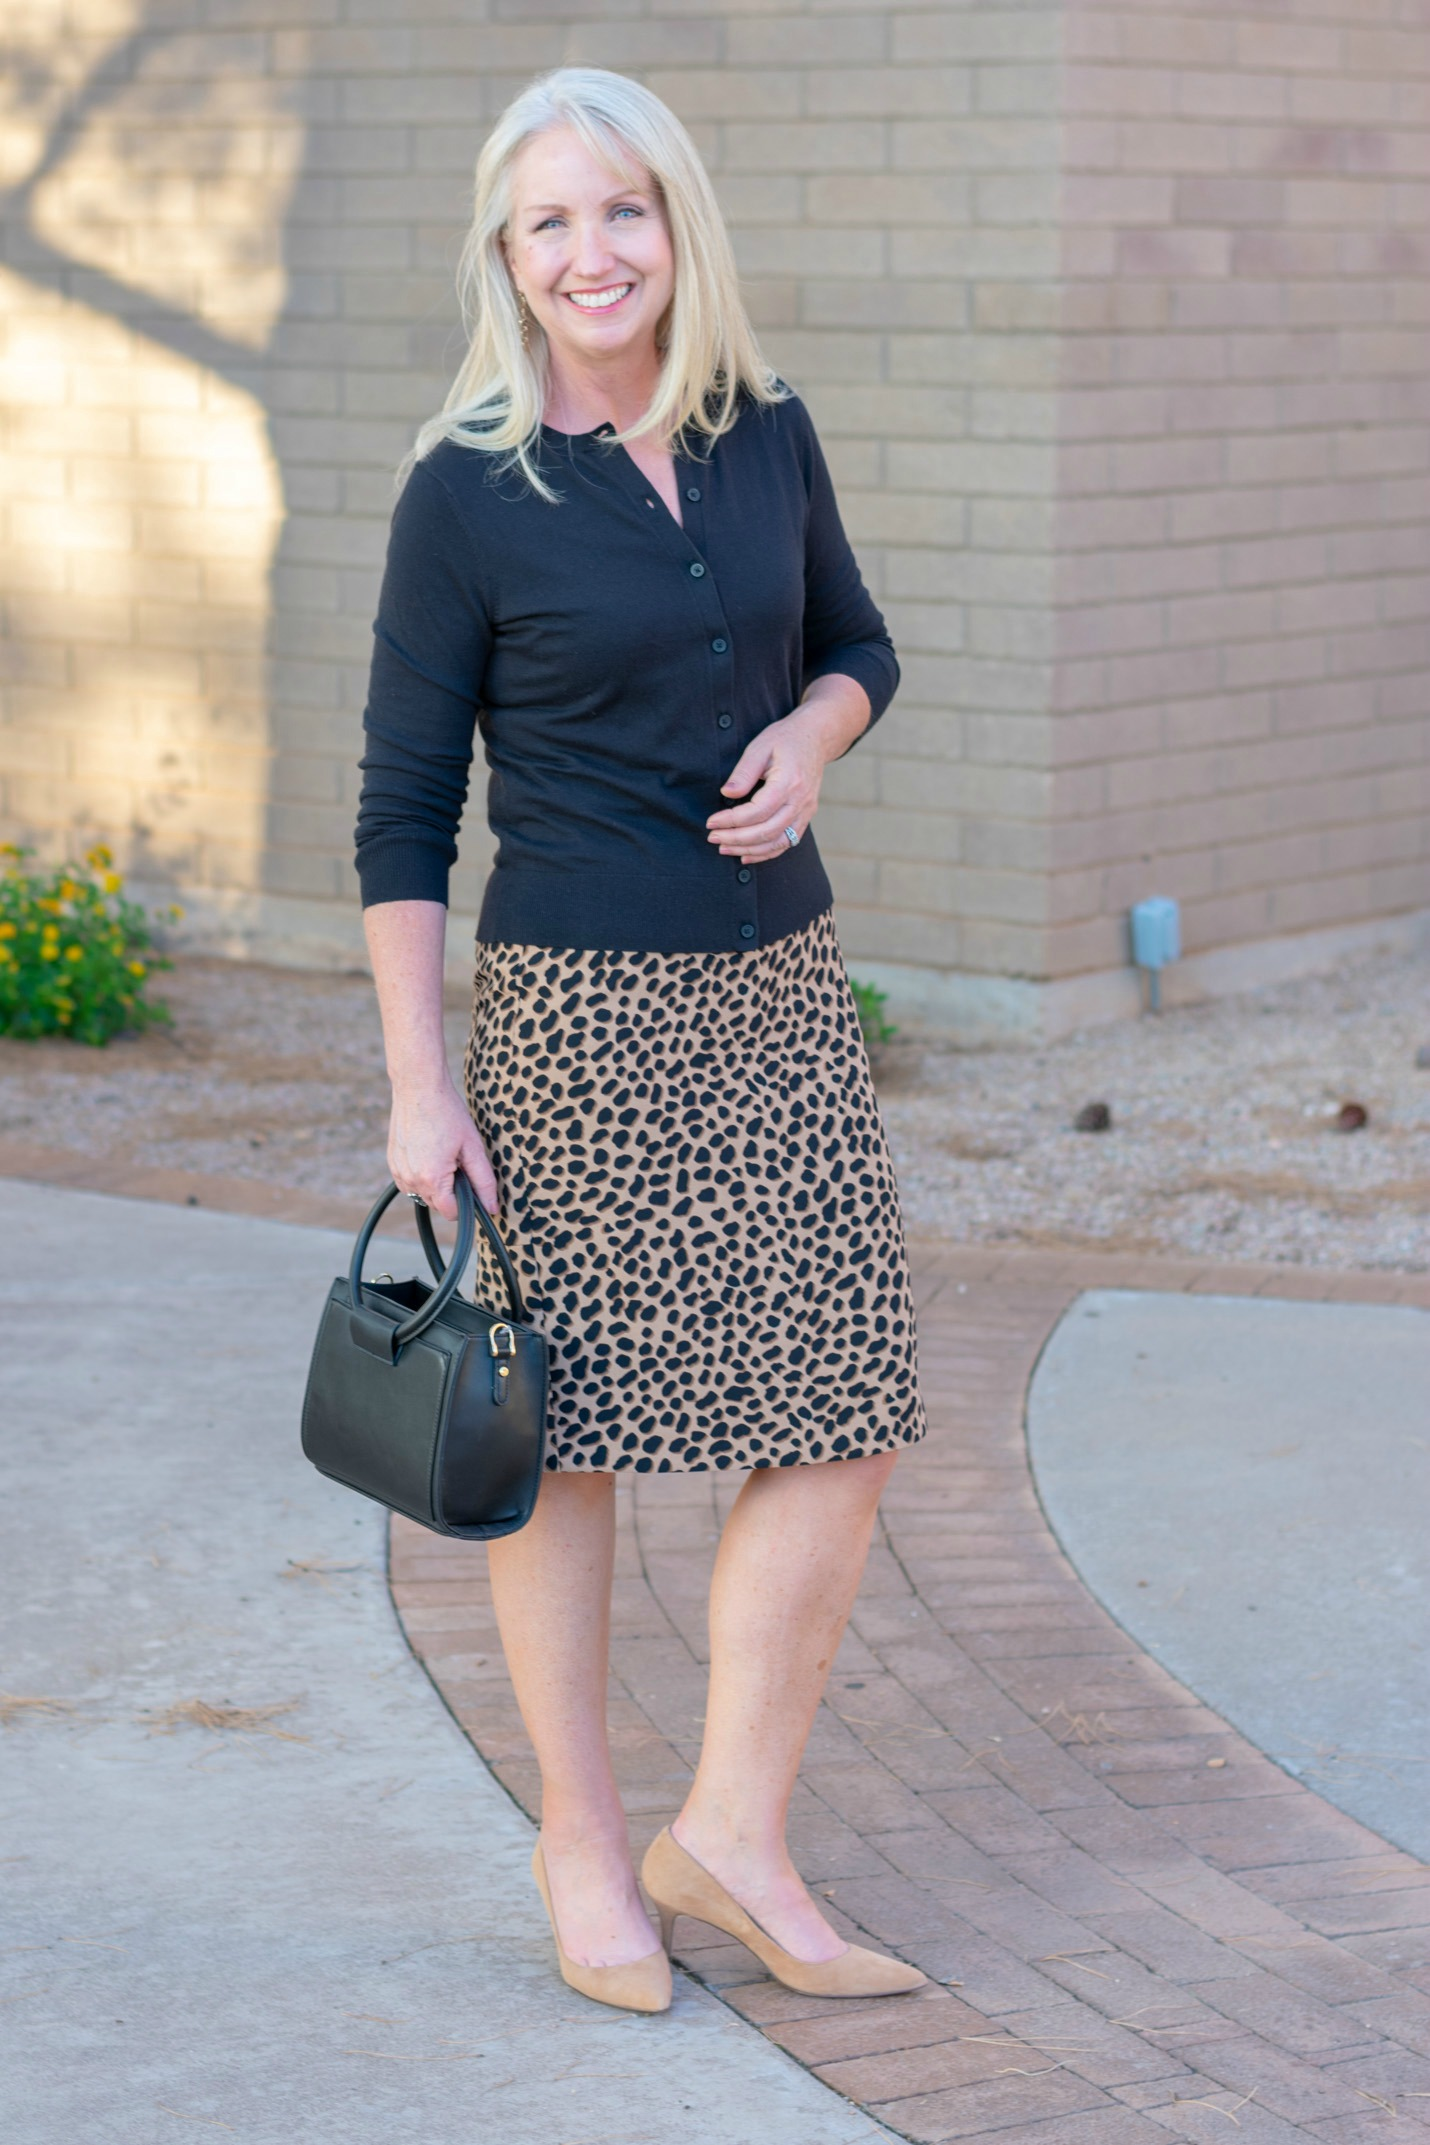 10 Tips for Wearing Leopard Print without Going Wild